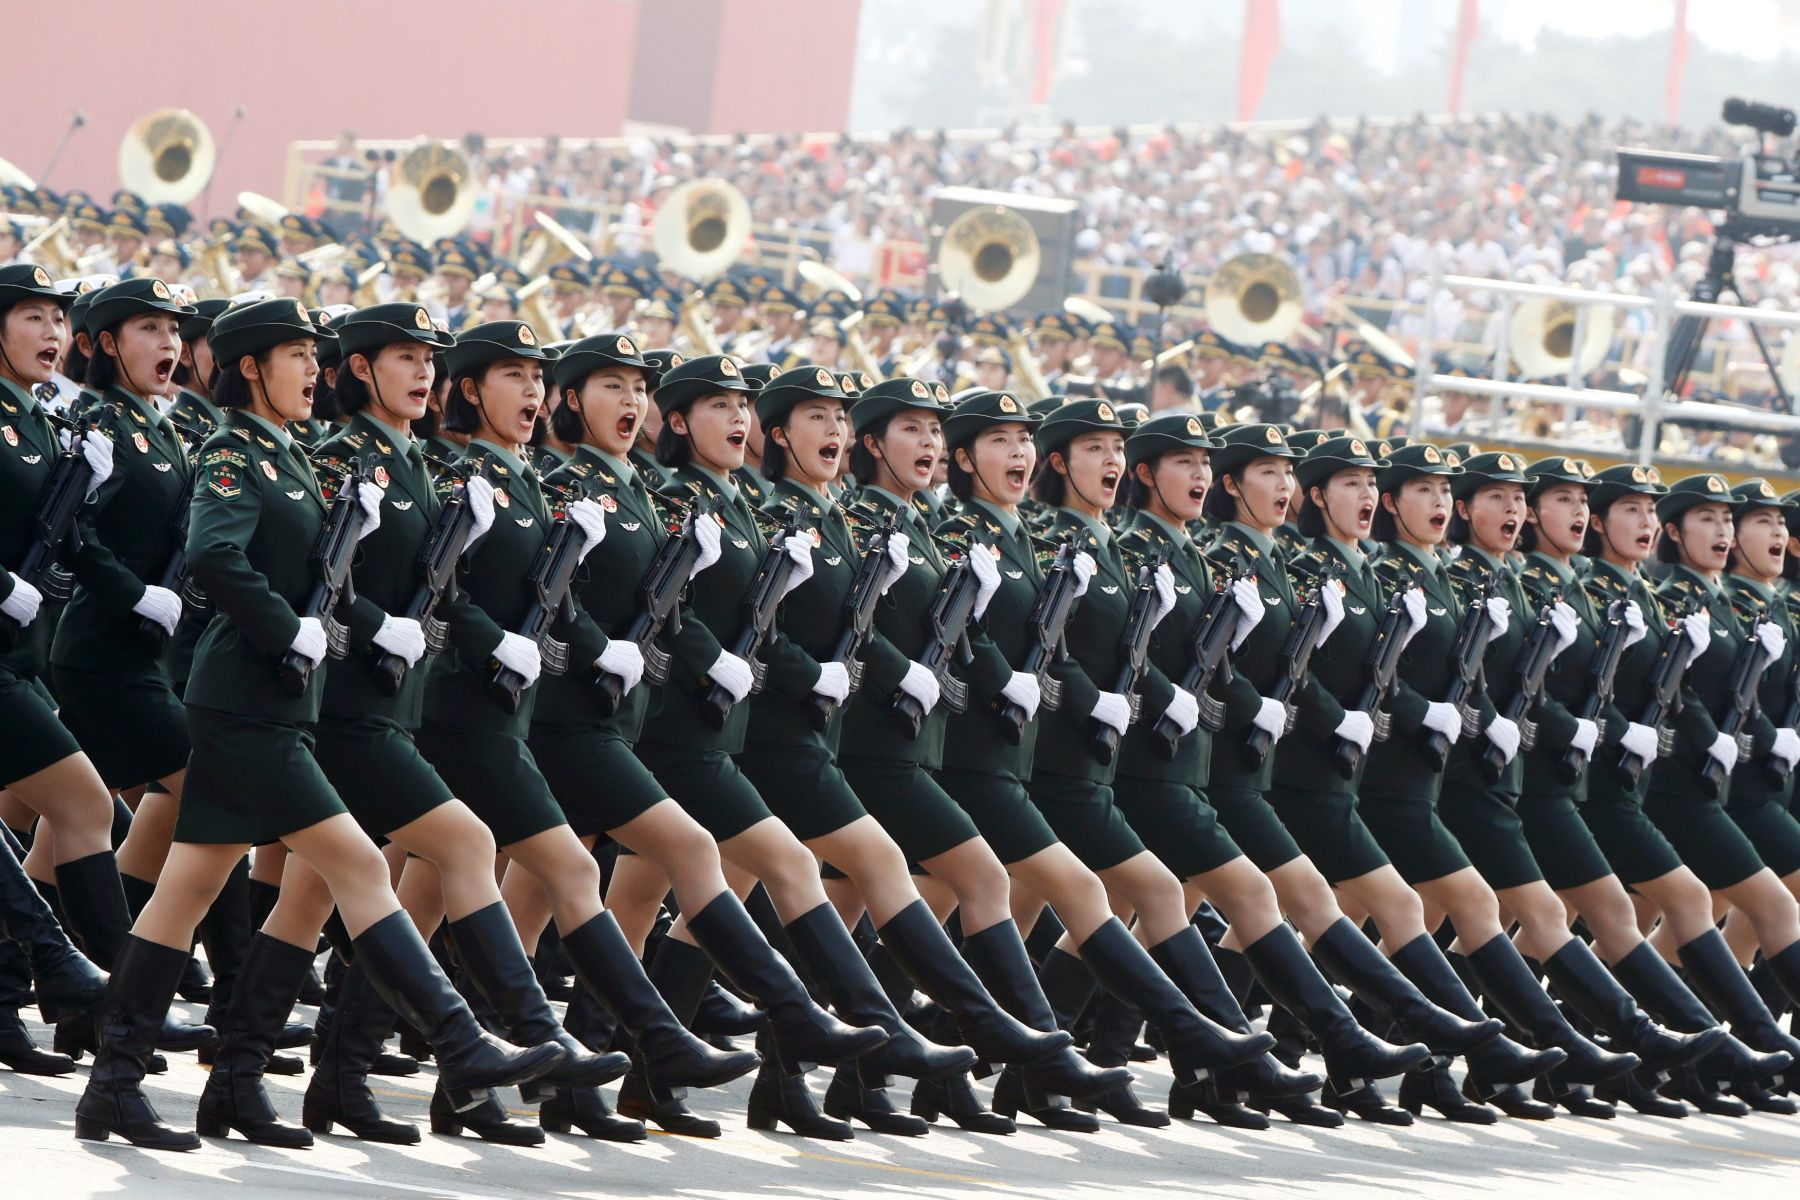 Soldiers of People's Liberation Army (PLA) march in formation during the military parade marking the 70th founding anniversary of People's Republic of China